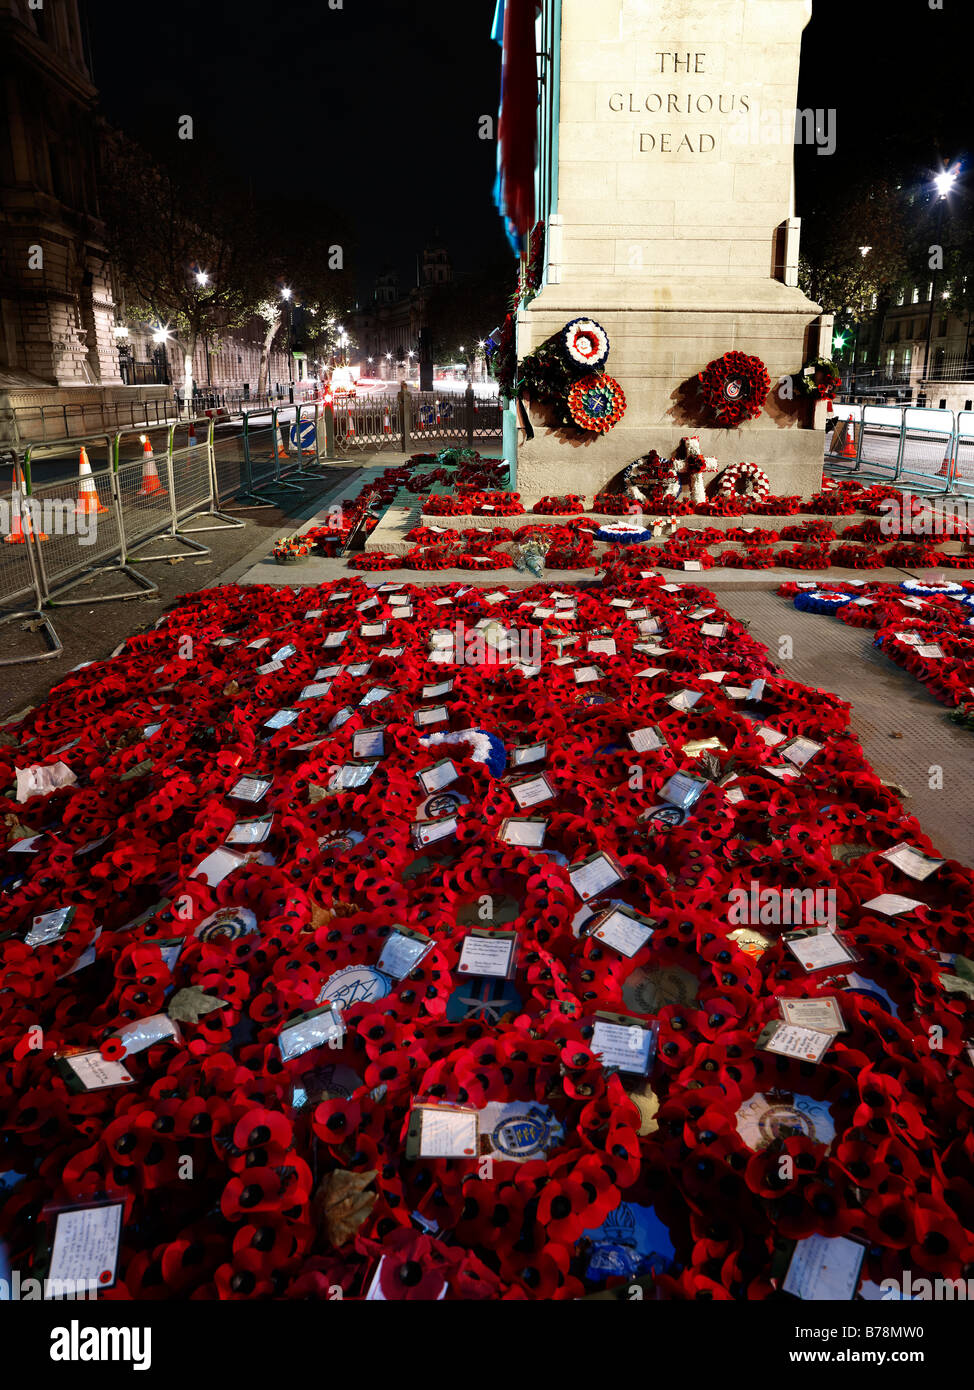 The Cenotaph at night. Portrait or upright format - Stock Image